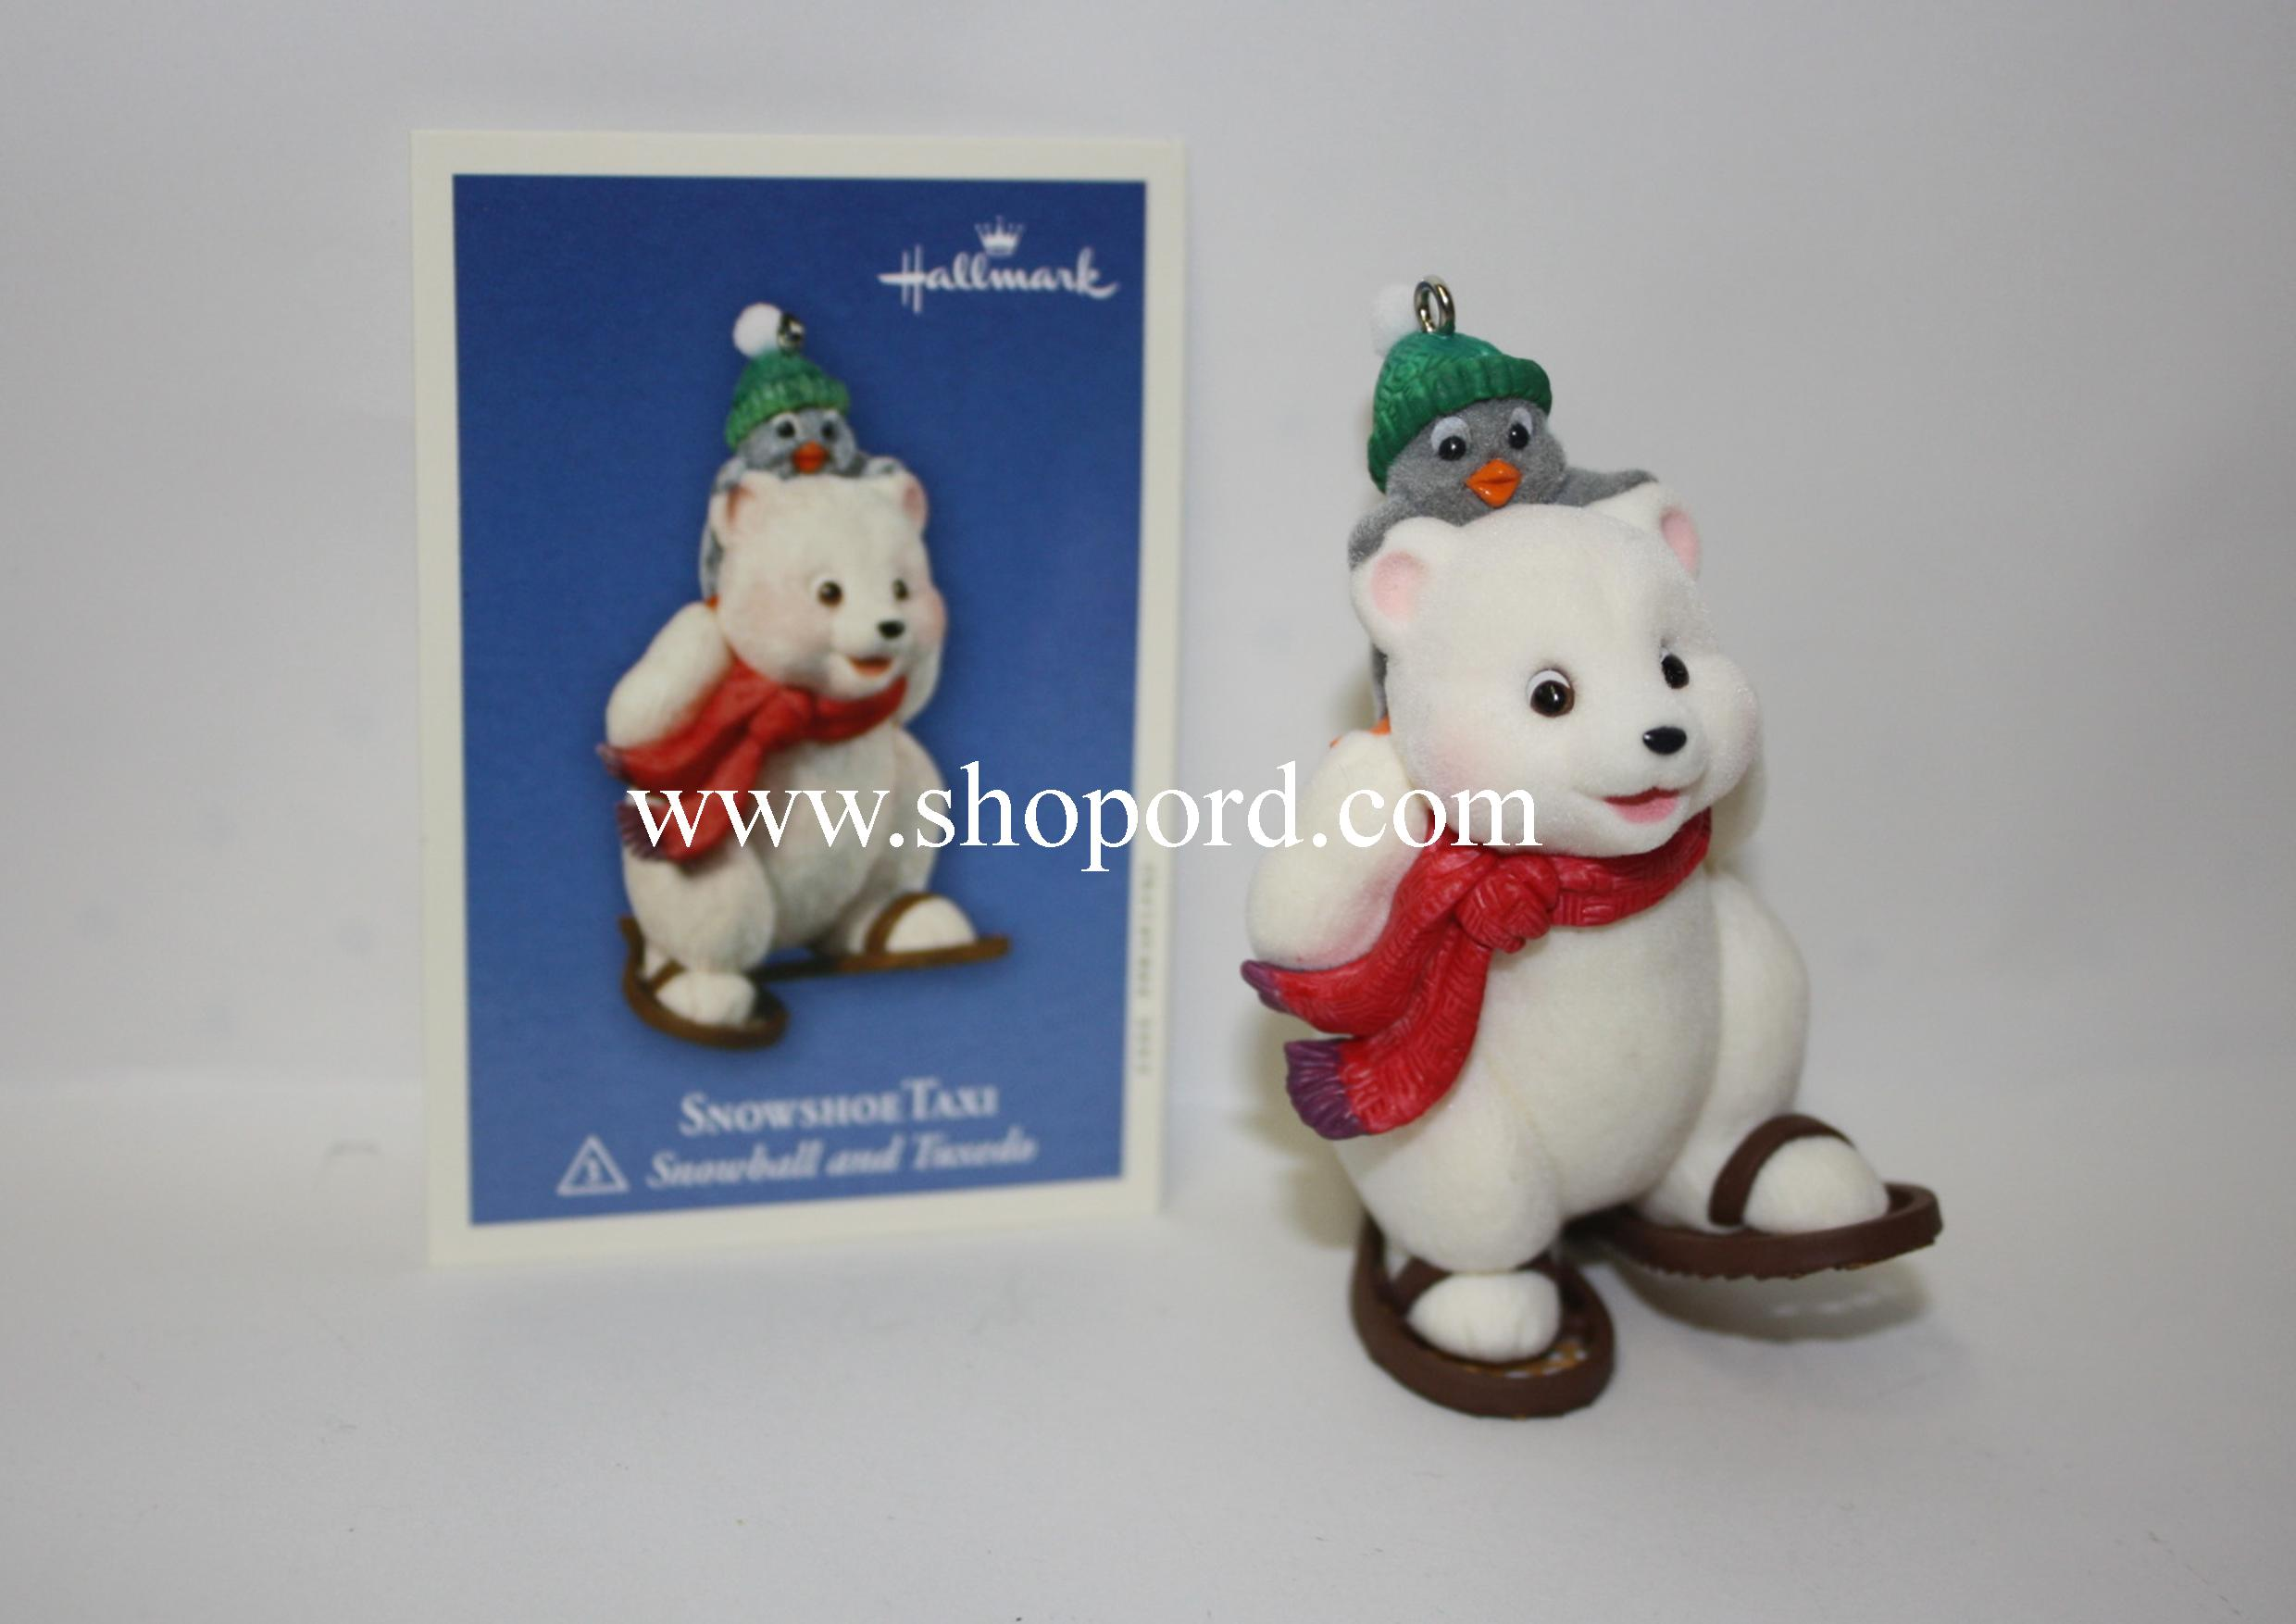 Hallmark 2003 Snowshoe Taxi Ornament 3rd in the Snowball and Tuxedo Series QX8227